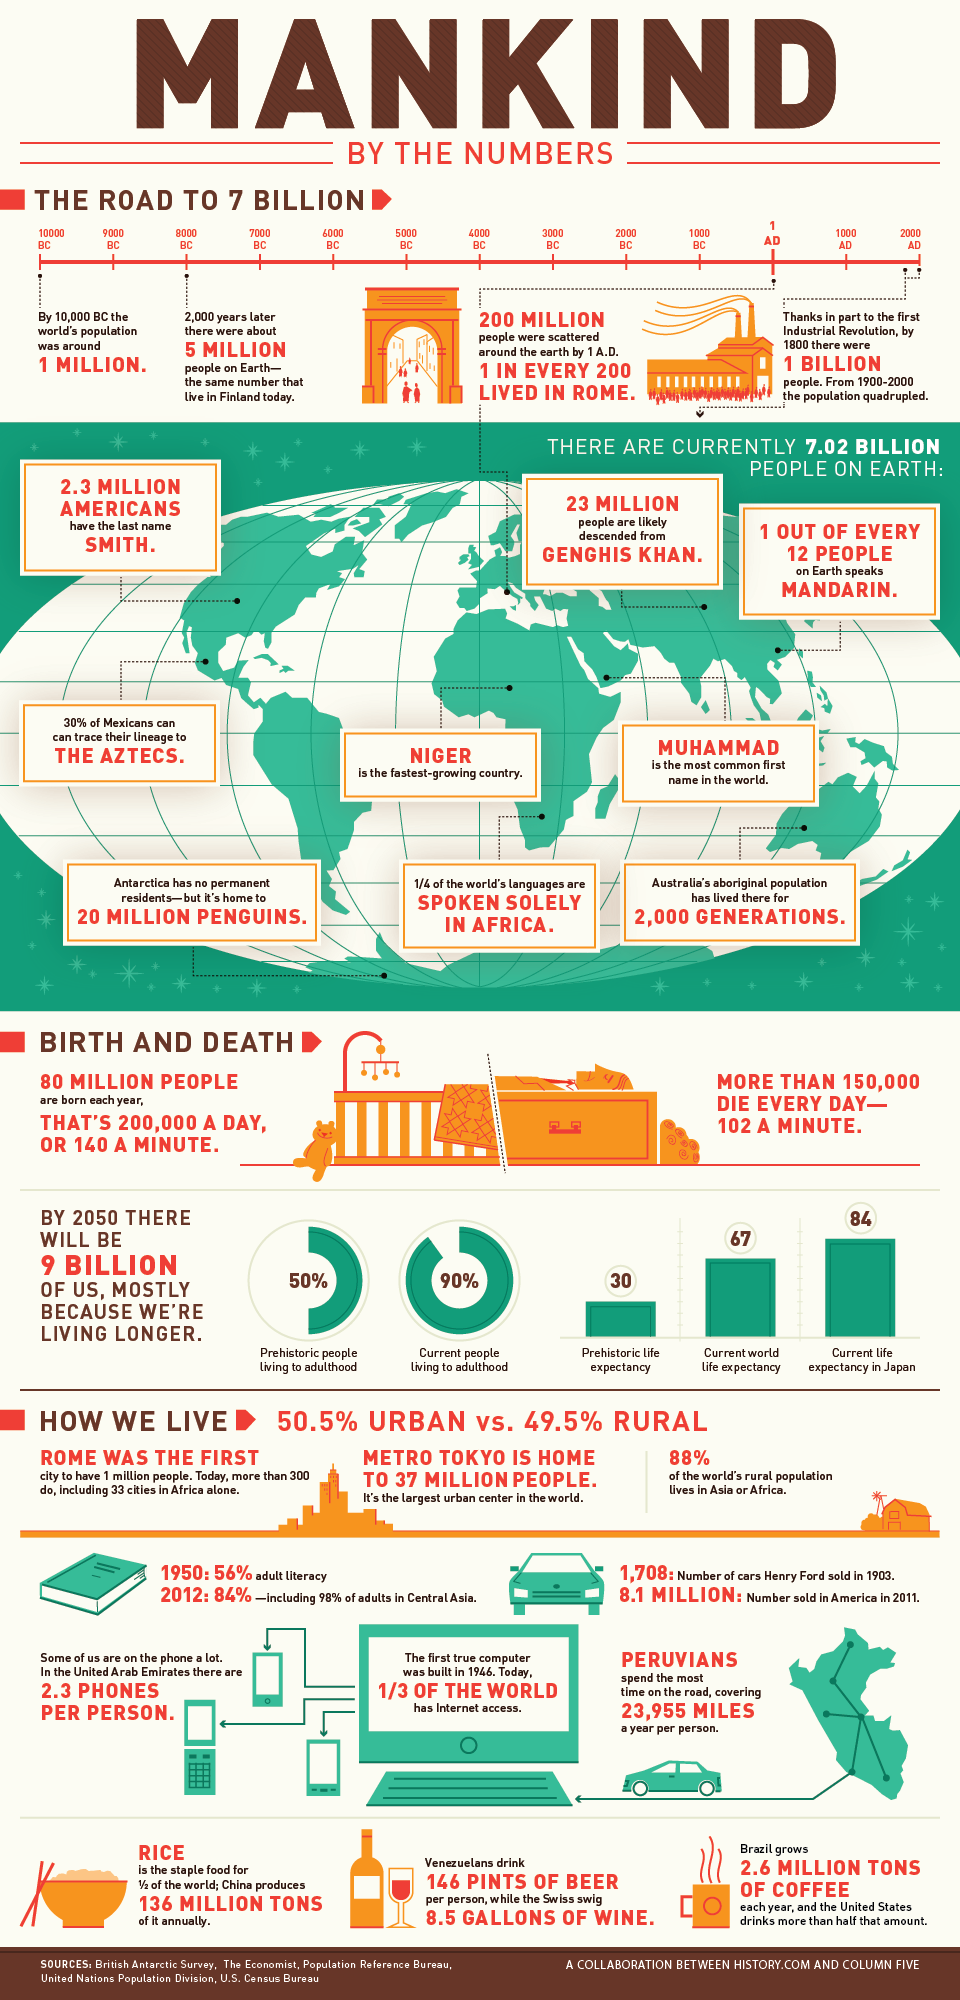 Infographic showing various statistics for mankind